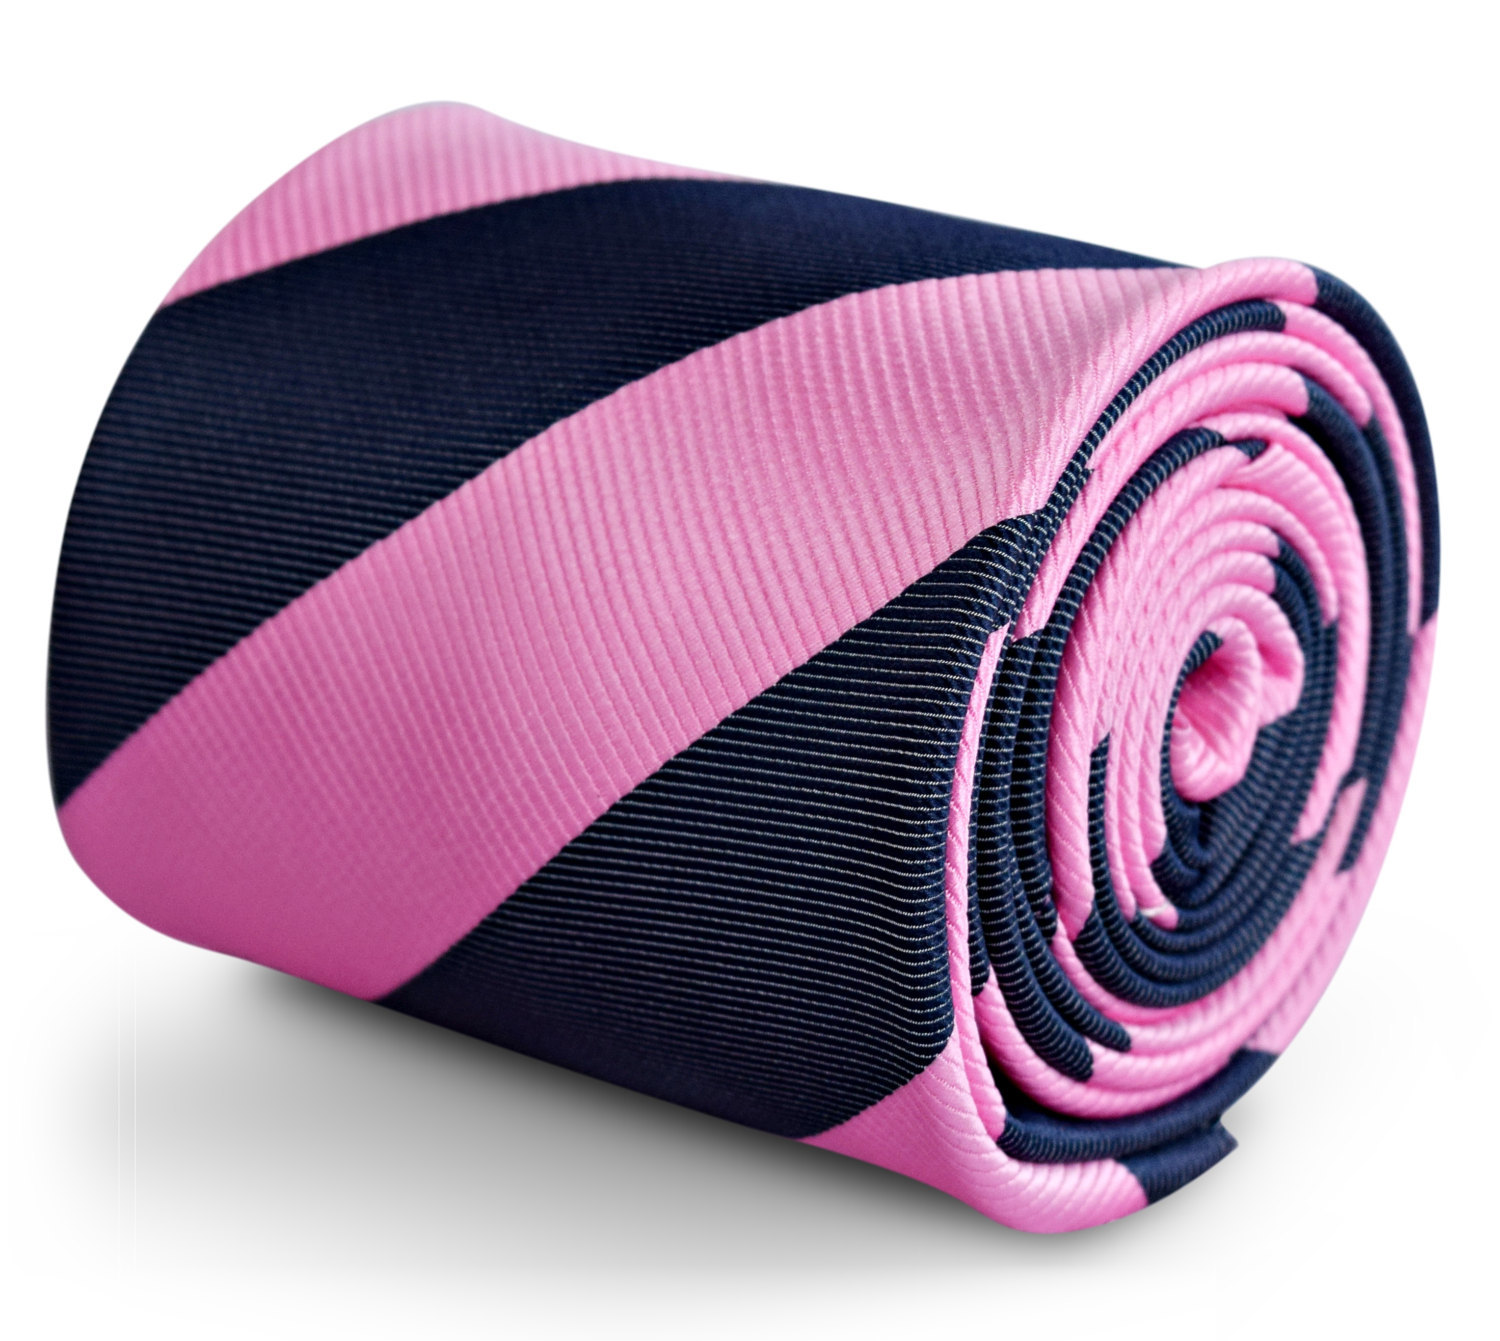 pink and navy blue barber striped tie with signature floral design to rear by Fr